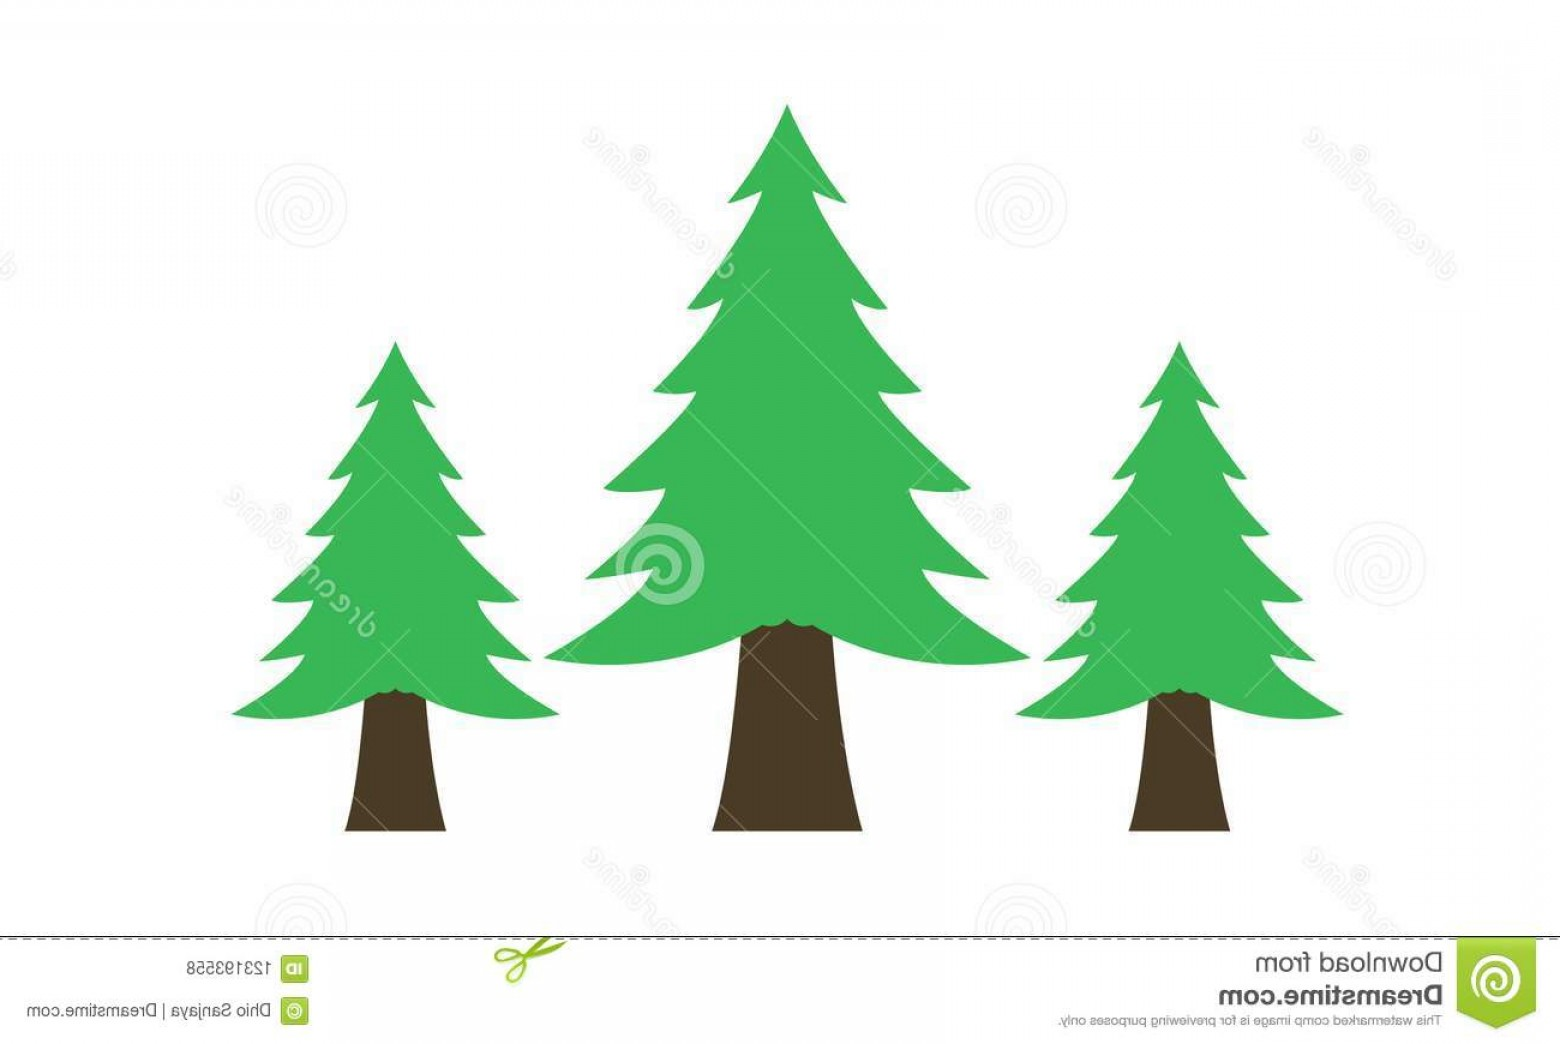 Pine Tree Vector Format: Spruce Pine Trees Fir Tree Grass Logo Nature Green Icon Set Vector Spruce Pine Trees Fir Tree Grass Logo Nature Green Icon Set Image